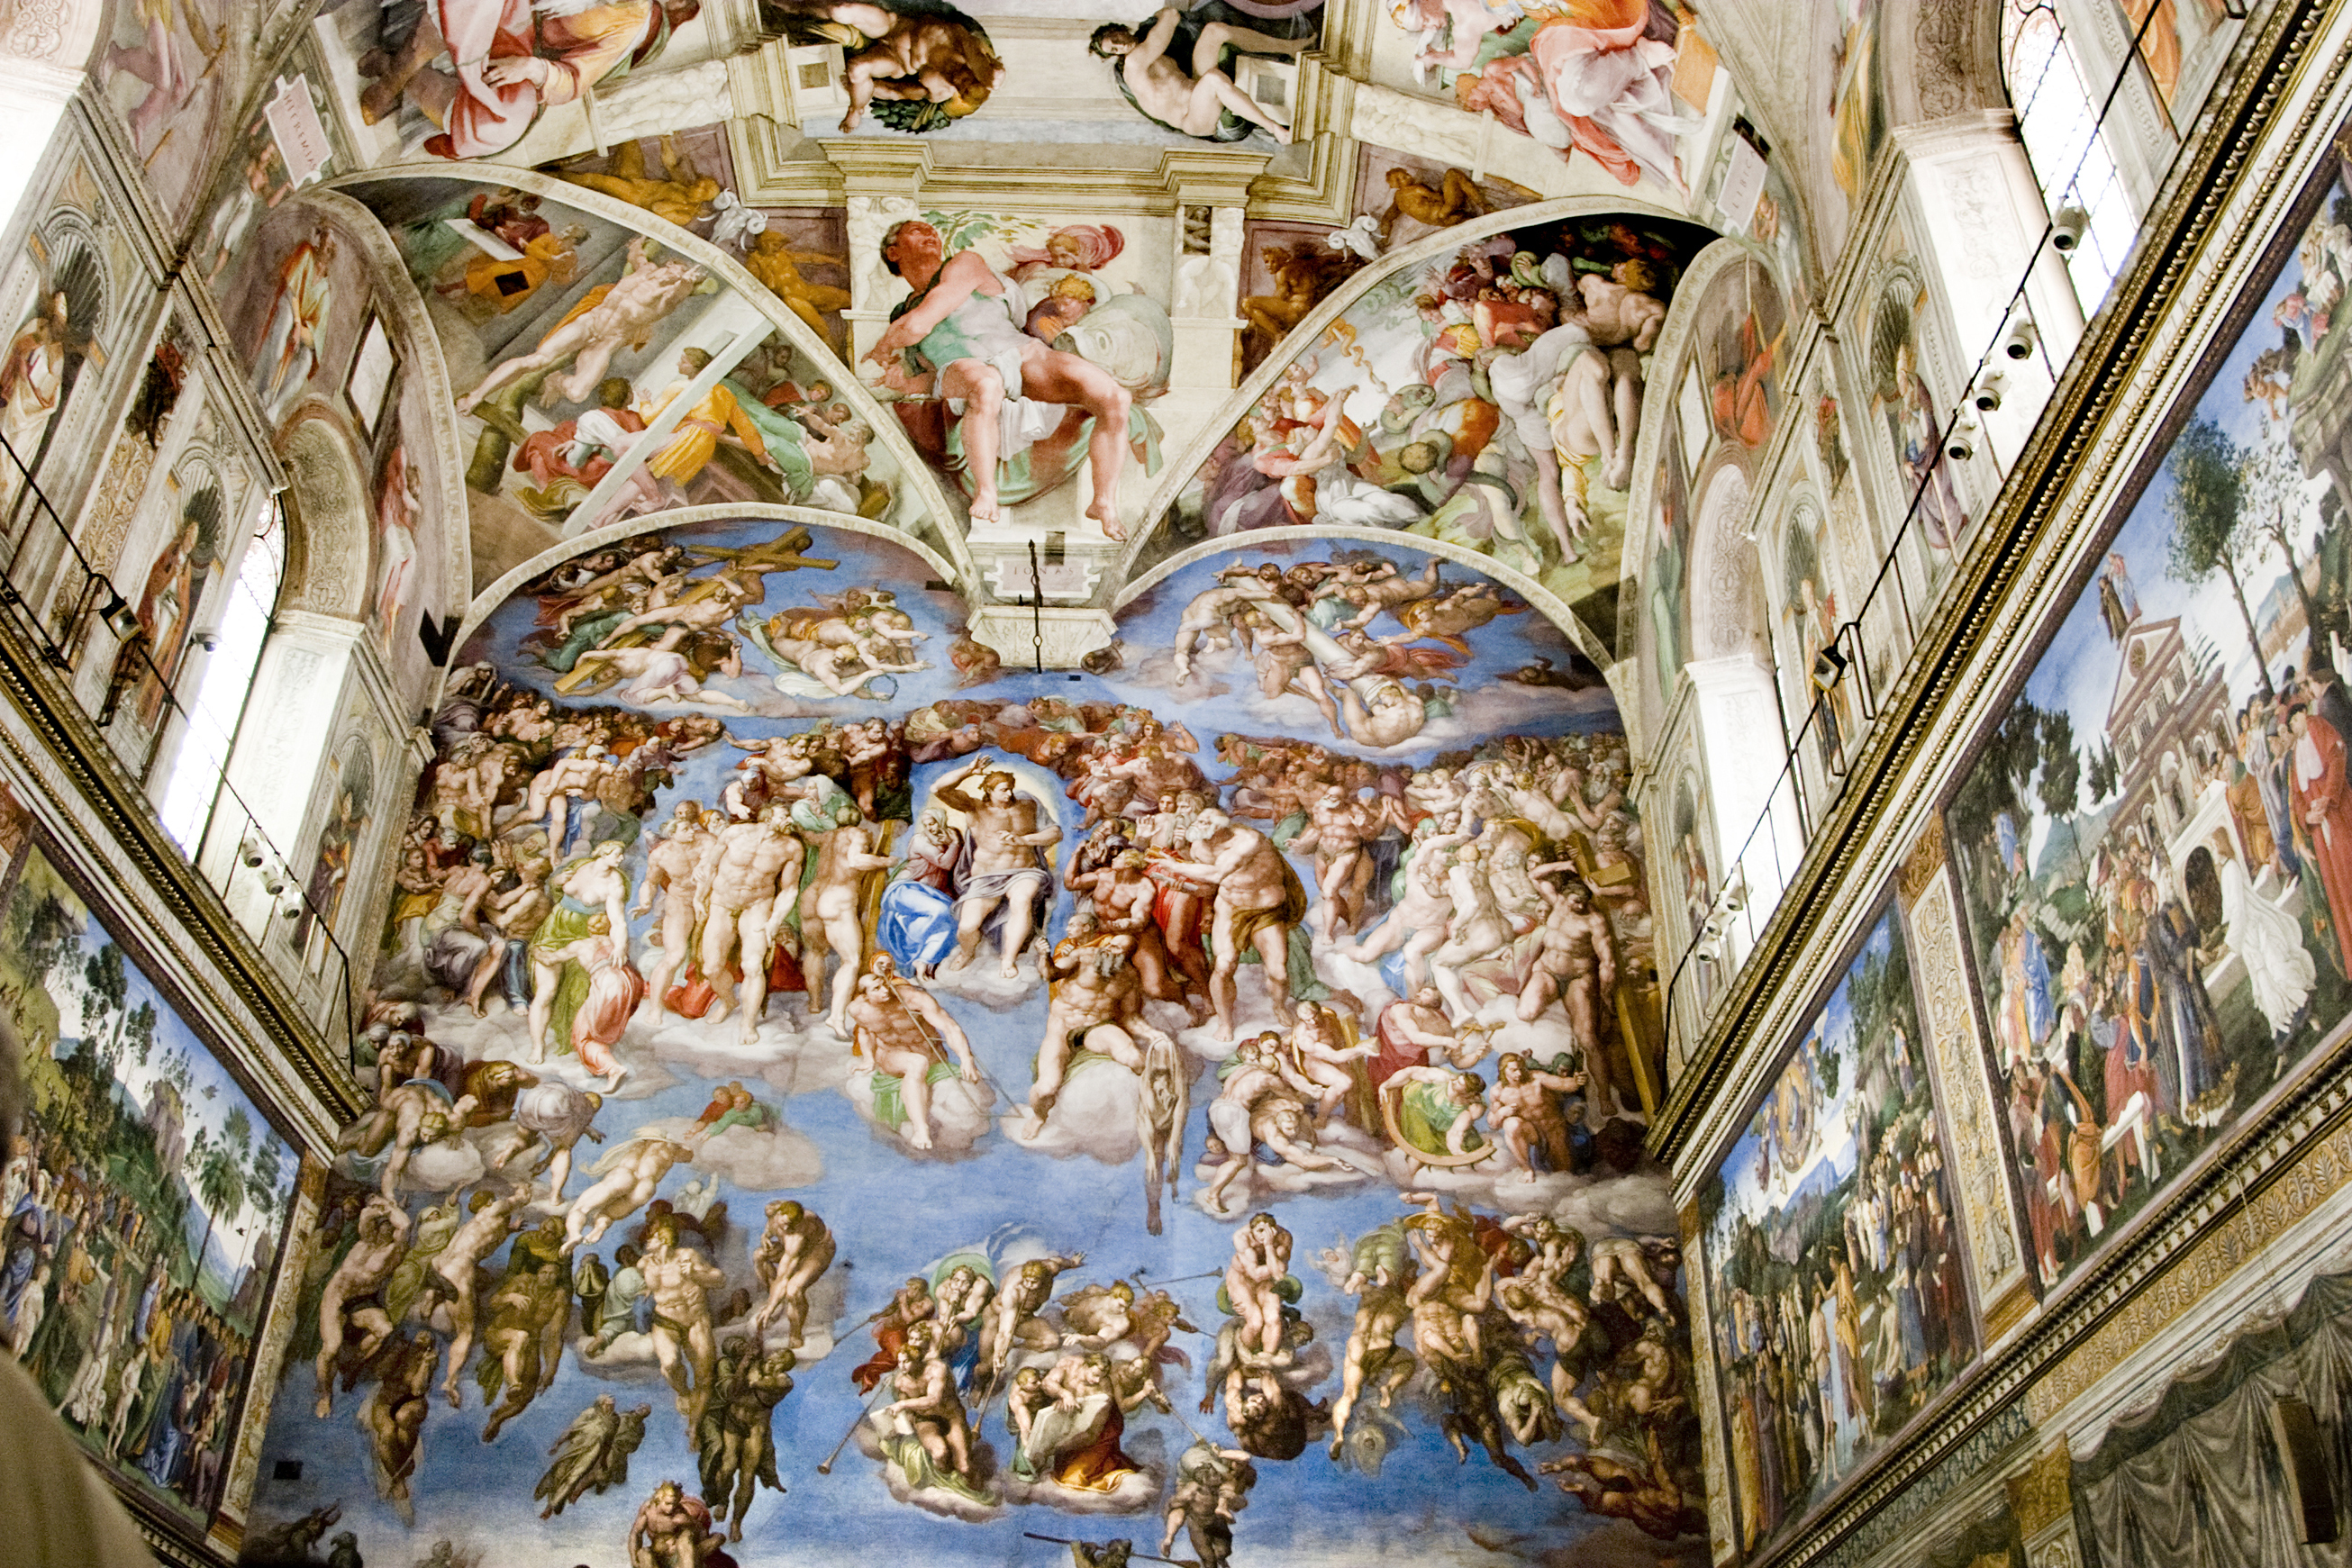 who painted the famous frescoes on ceiling of sistine chapel in